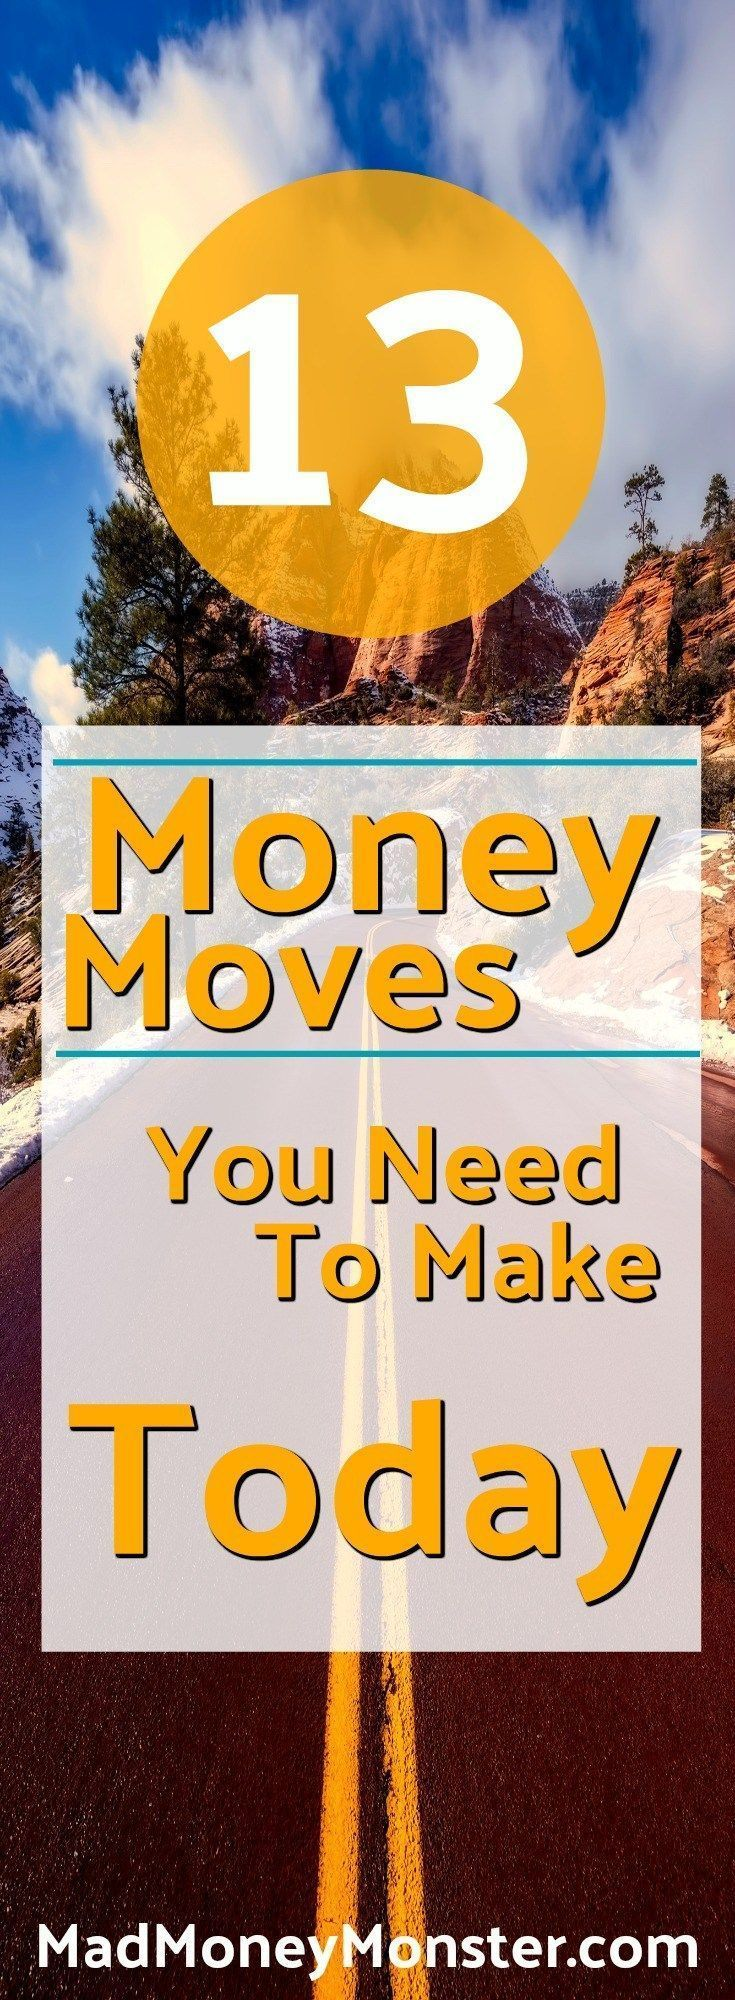 Start taking control of your money today by using these 13 simple tips. Money Management | Frugality | Debt Freedom | Financial Independence | Financial Freedom via @MadMoneyMonster